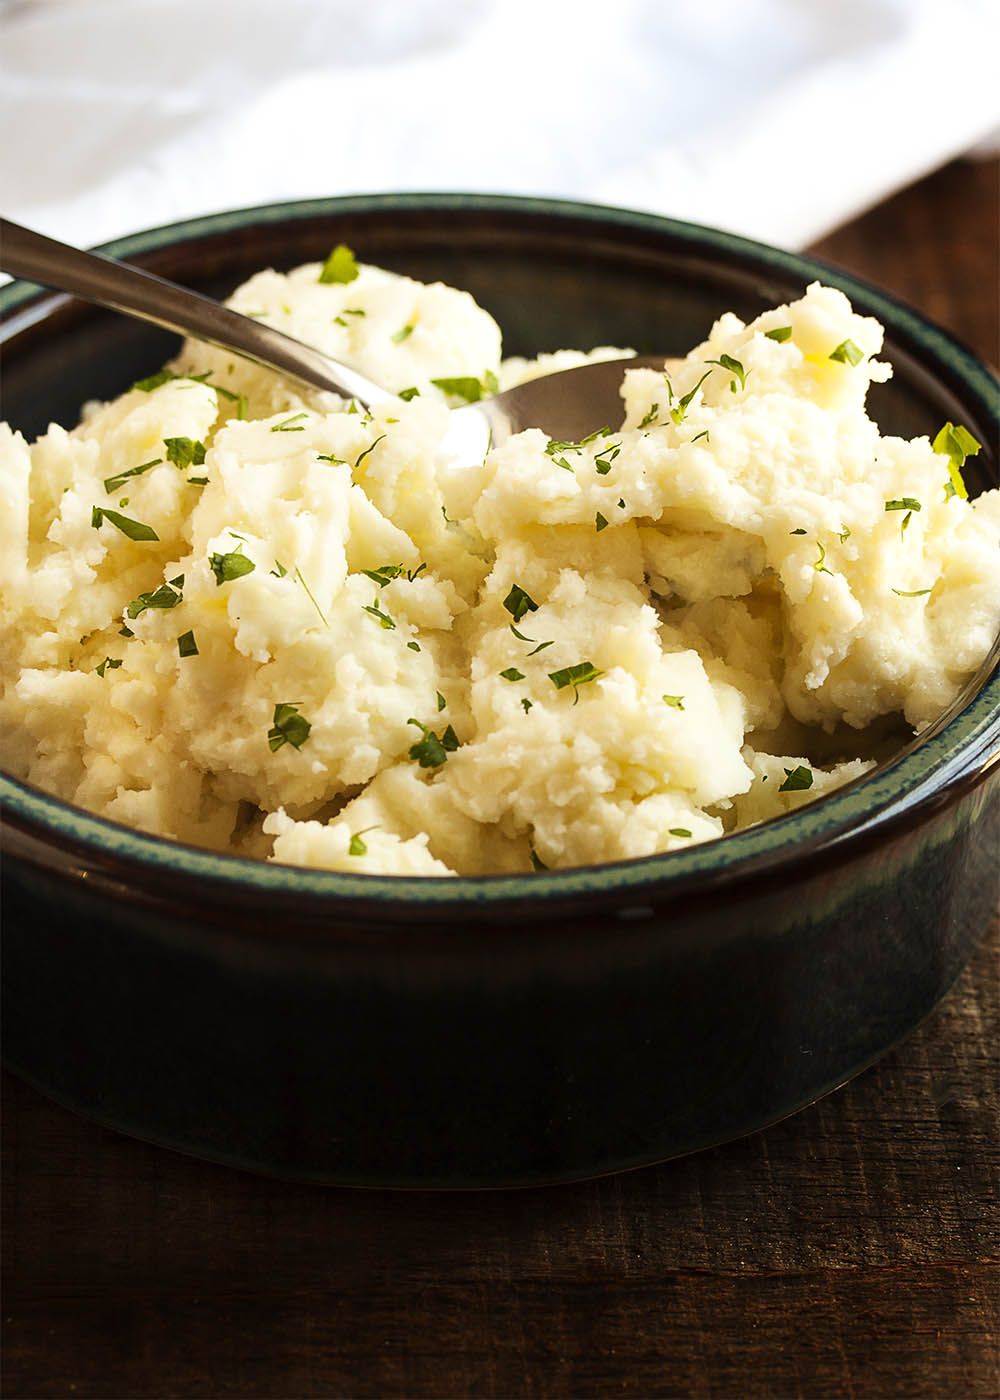 Cream Cheese Mashed Potatoes - Peeled yellow potatoes are simmered in salted water and then mashed with cream cheese and a splash of heavy cream in these amazingly tasty mashed potatoes. | justalittlebitofbacon.com